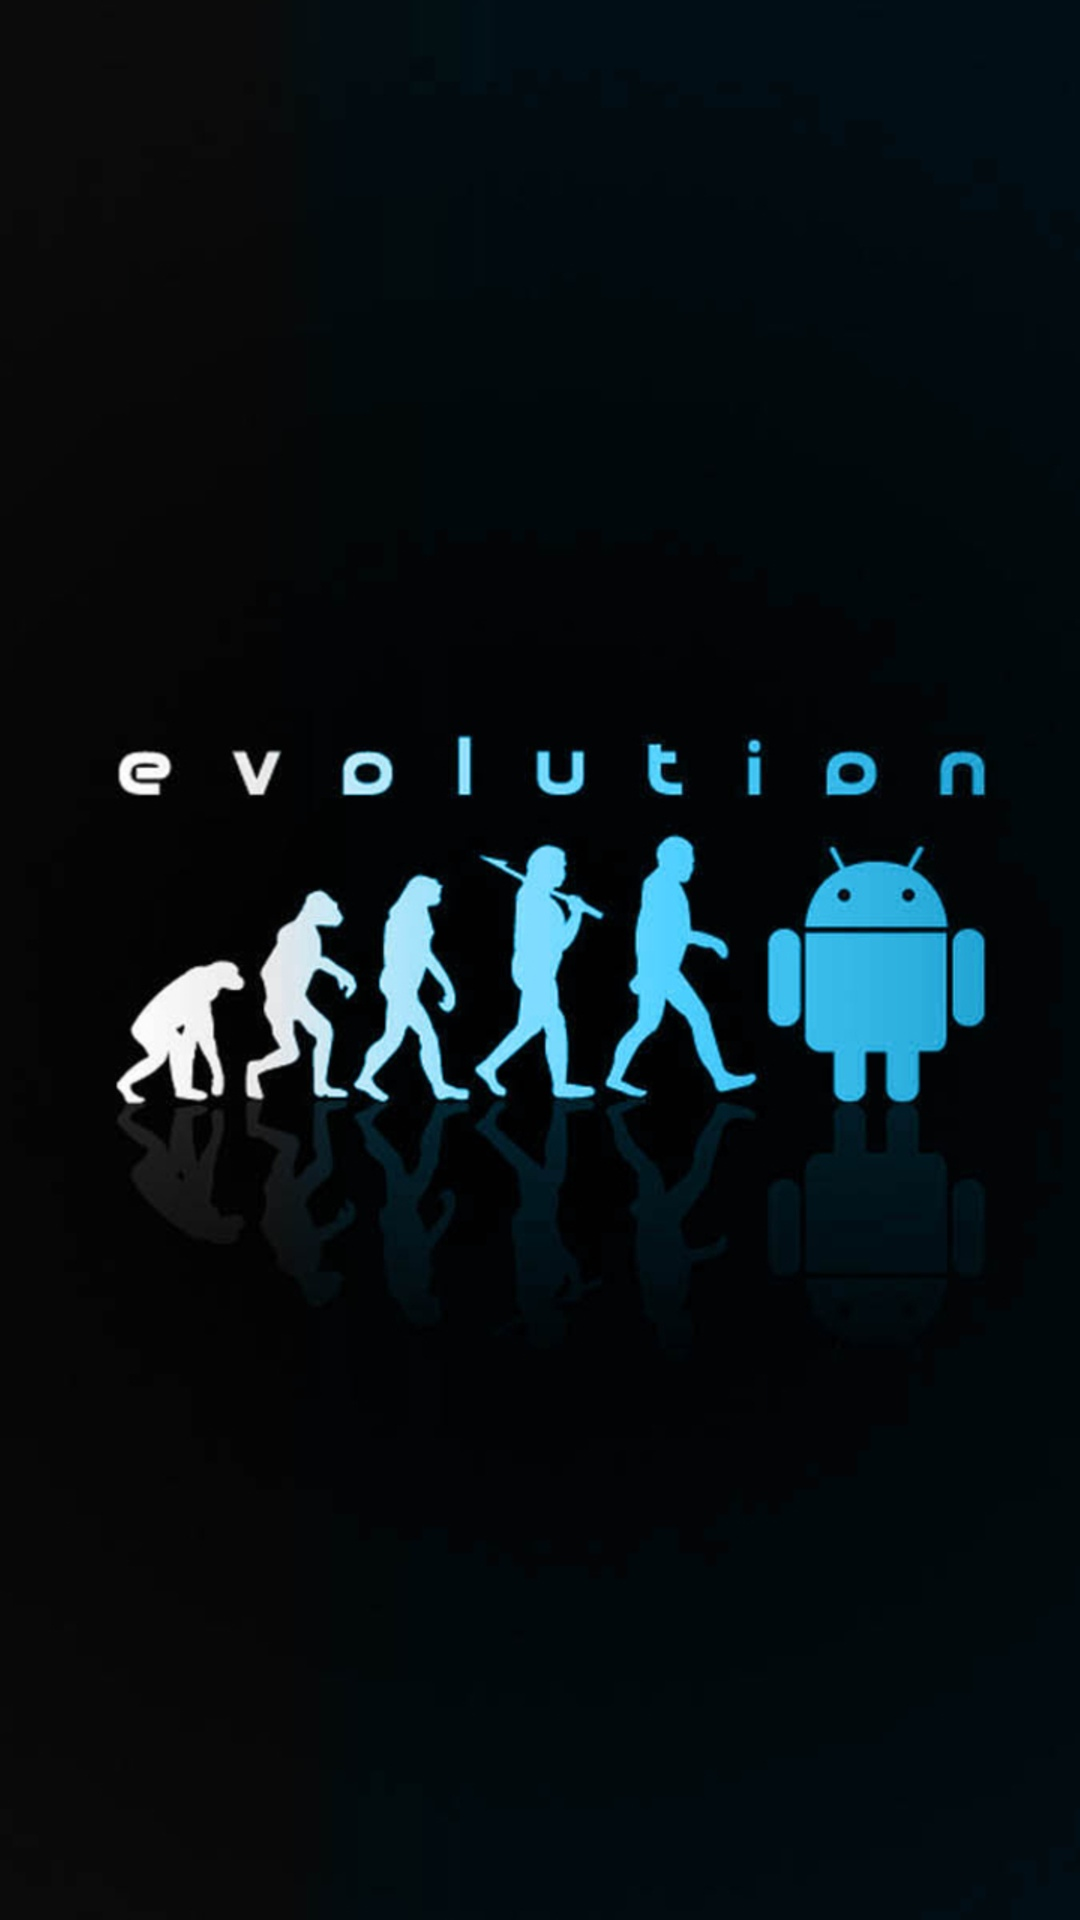 hd funny evolution android mobile phone wallpaper 1080x1920 1080x1920